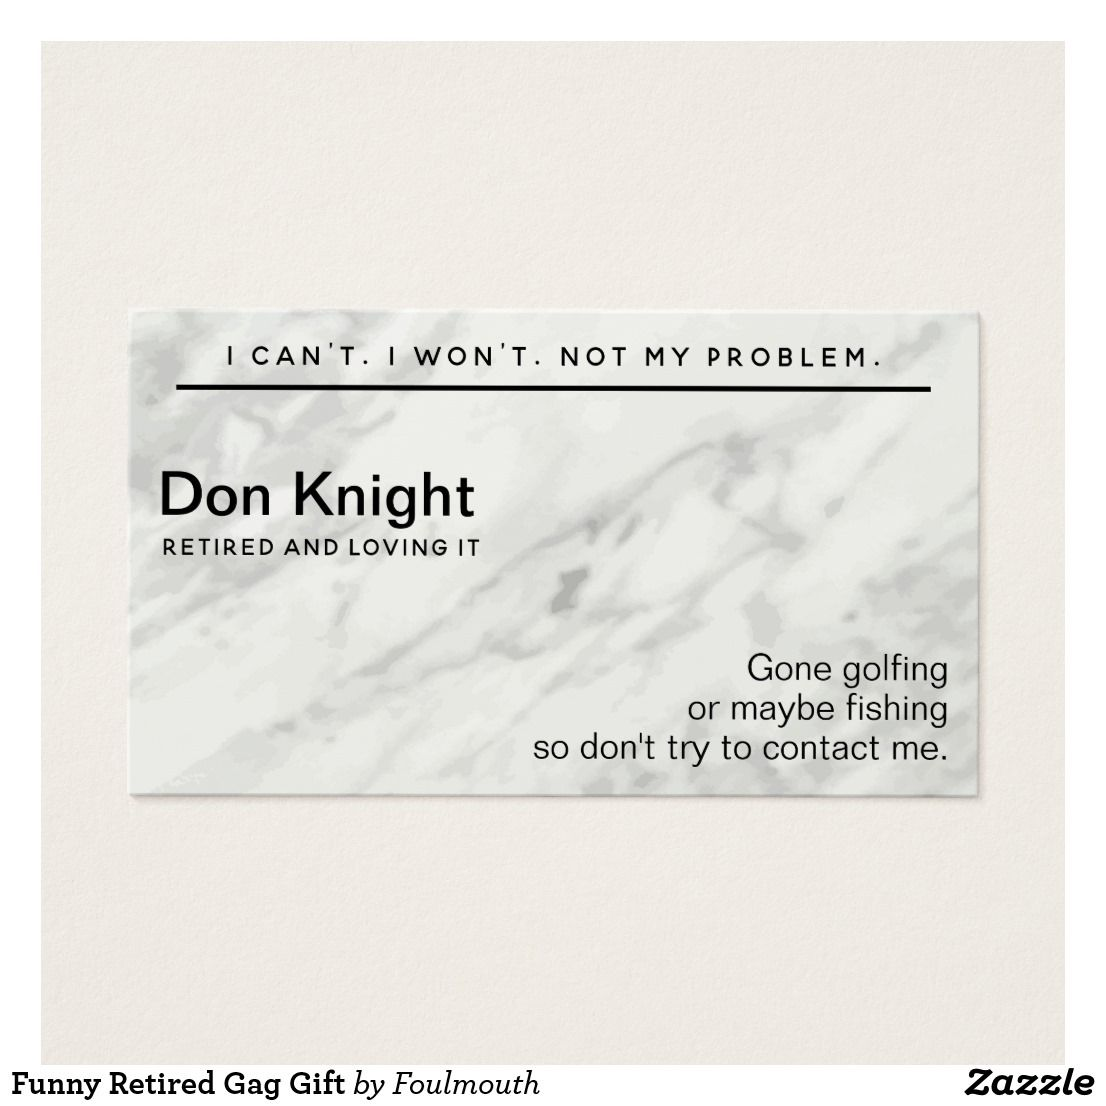 Funny Retired Gag Gift Business Card Zazzle Com Retirement Humor Gag Gifts Gift Business